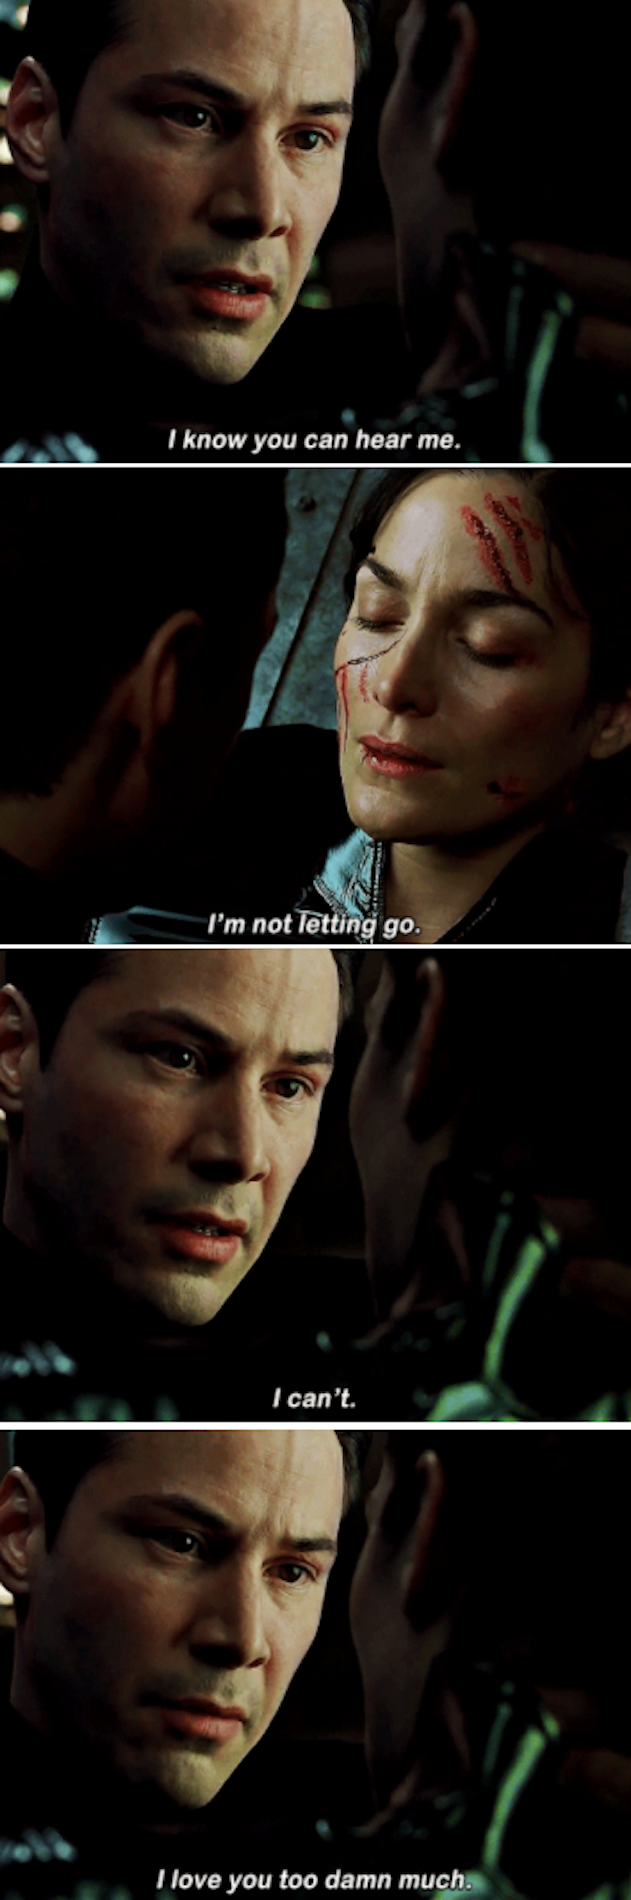 """Neo telling Trinity: """"I know you can hear me. I'm not letting go. I can't. I love you too damn much"""""""